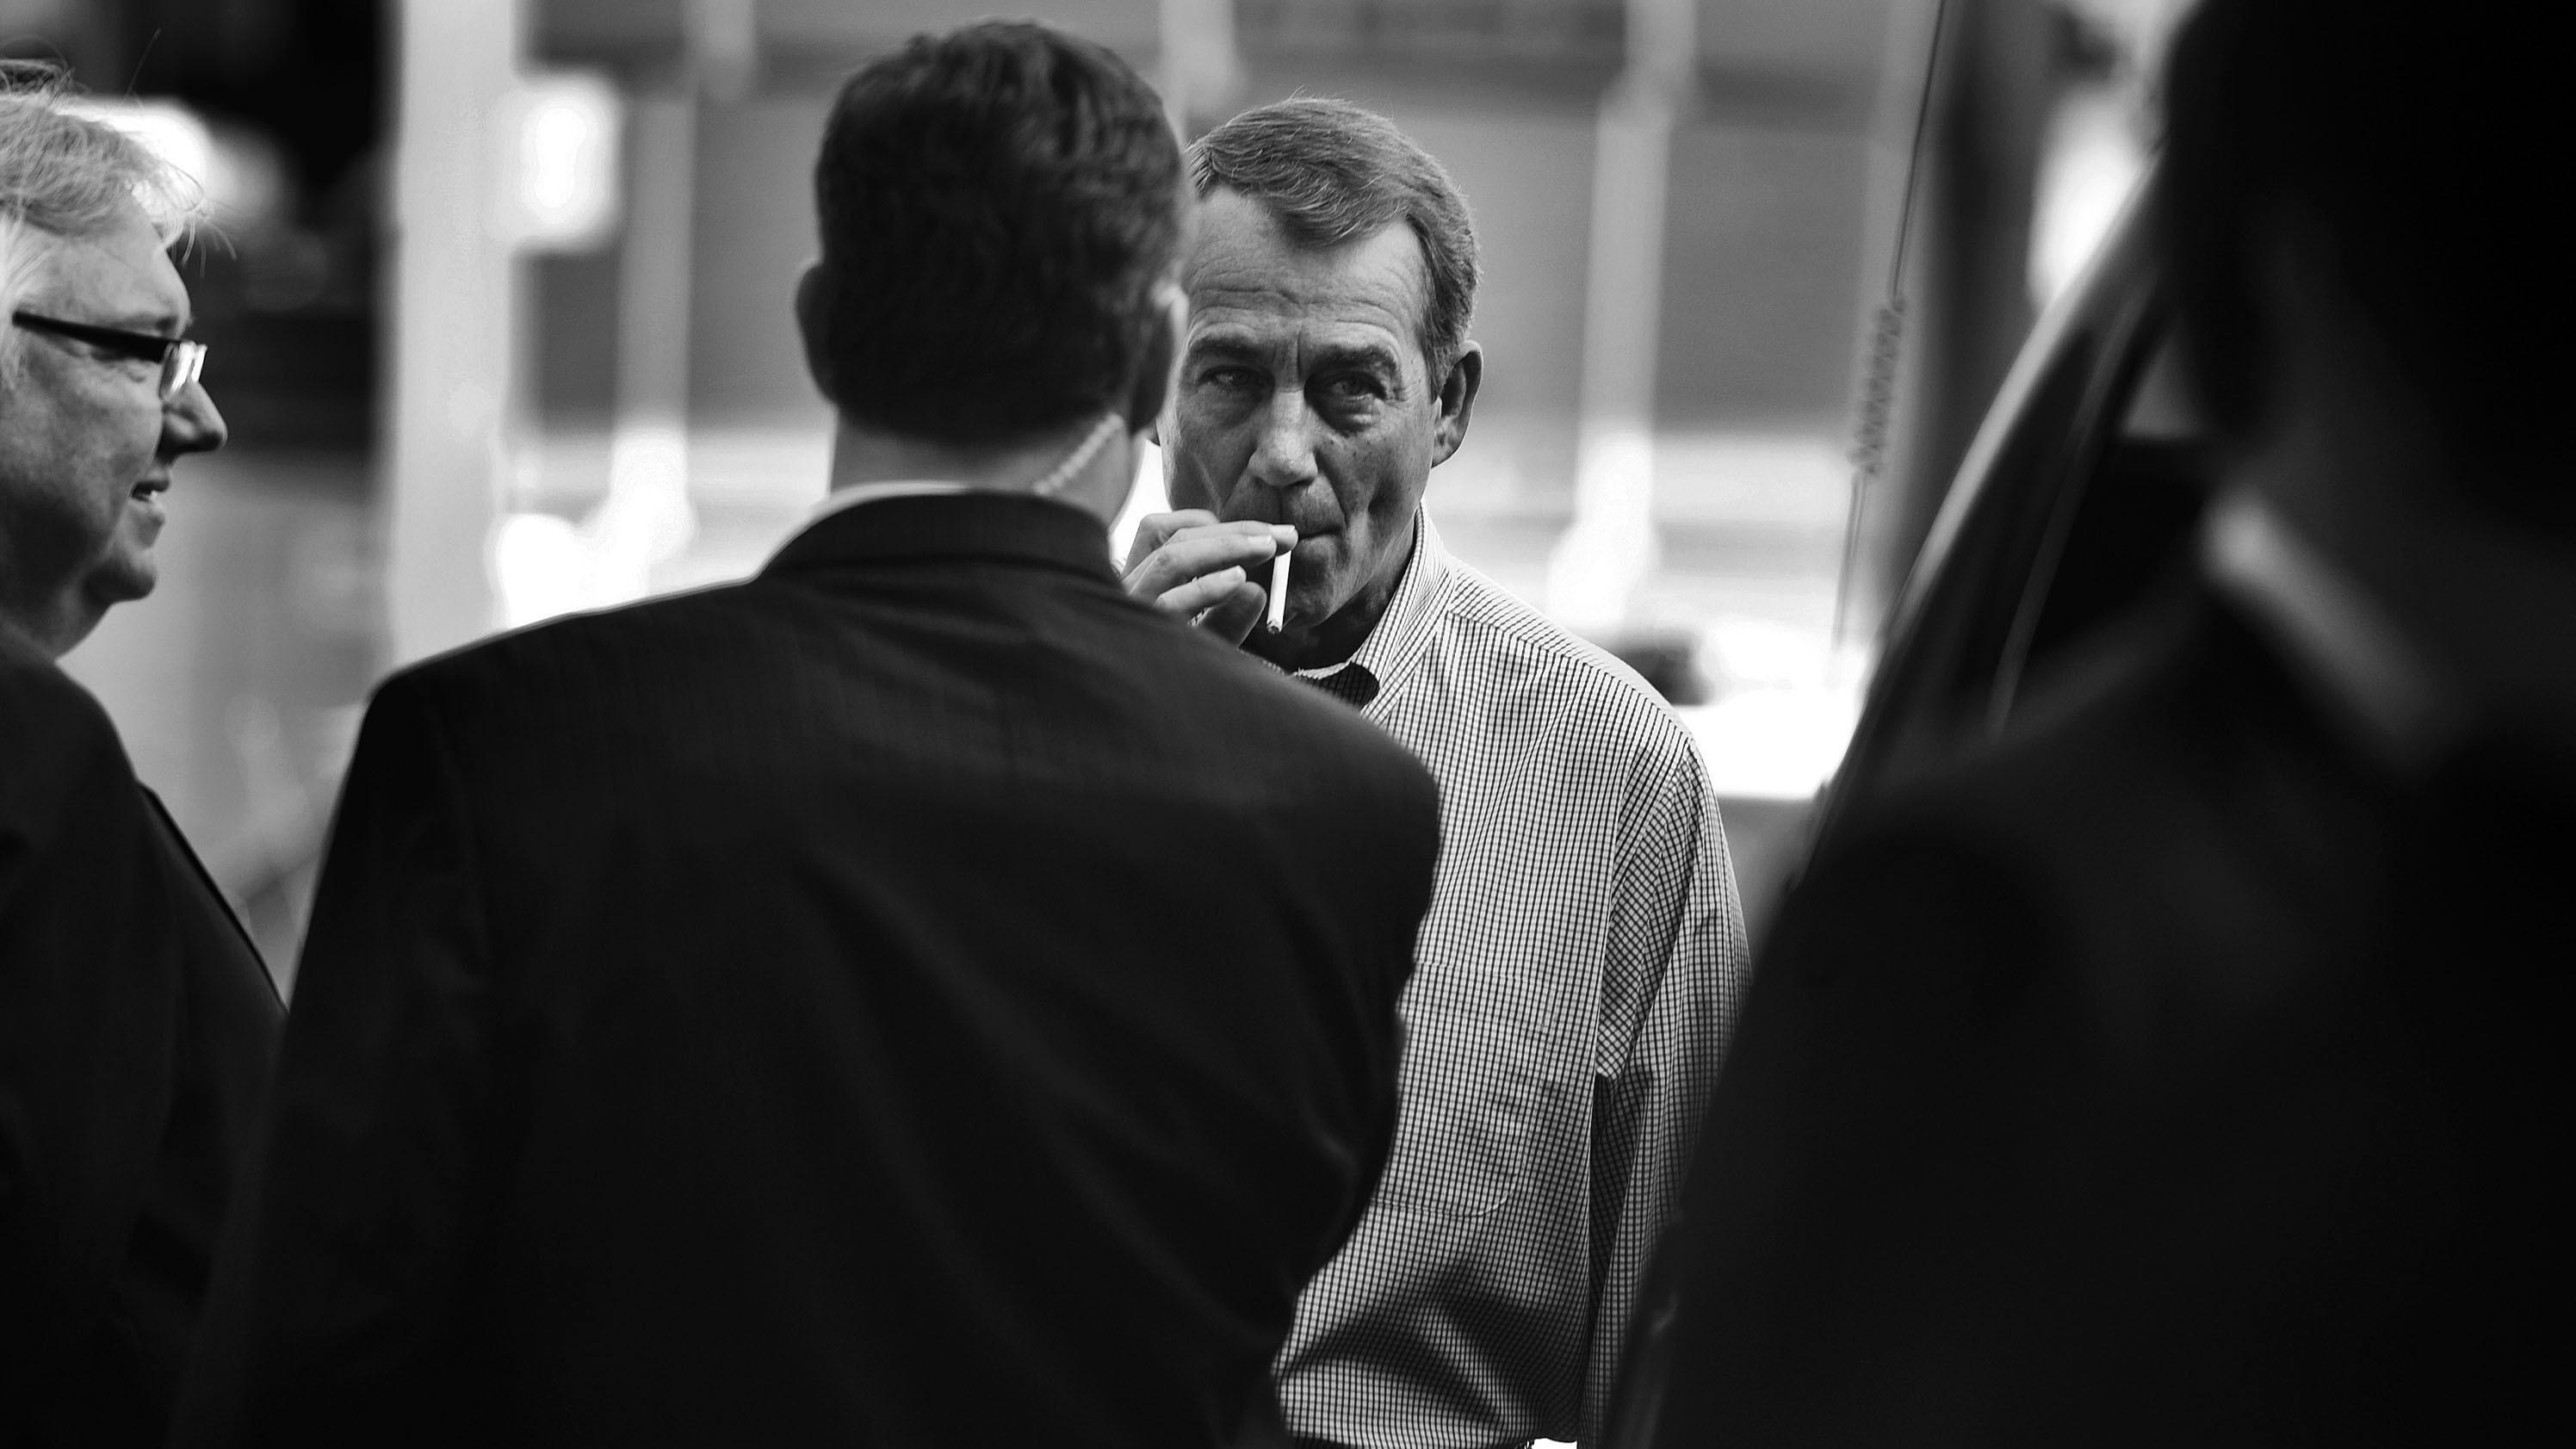 John Boehner smokes a cigarette after a news conference outside of Tart Lumber Company in Sterling, Va., in 2010. (Photo by Tom Williams/Roll Call Photos/Getty Images)